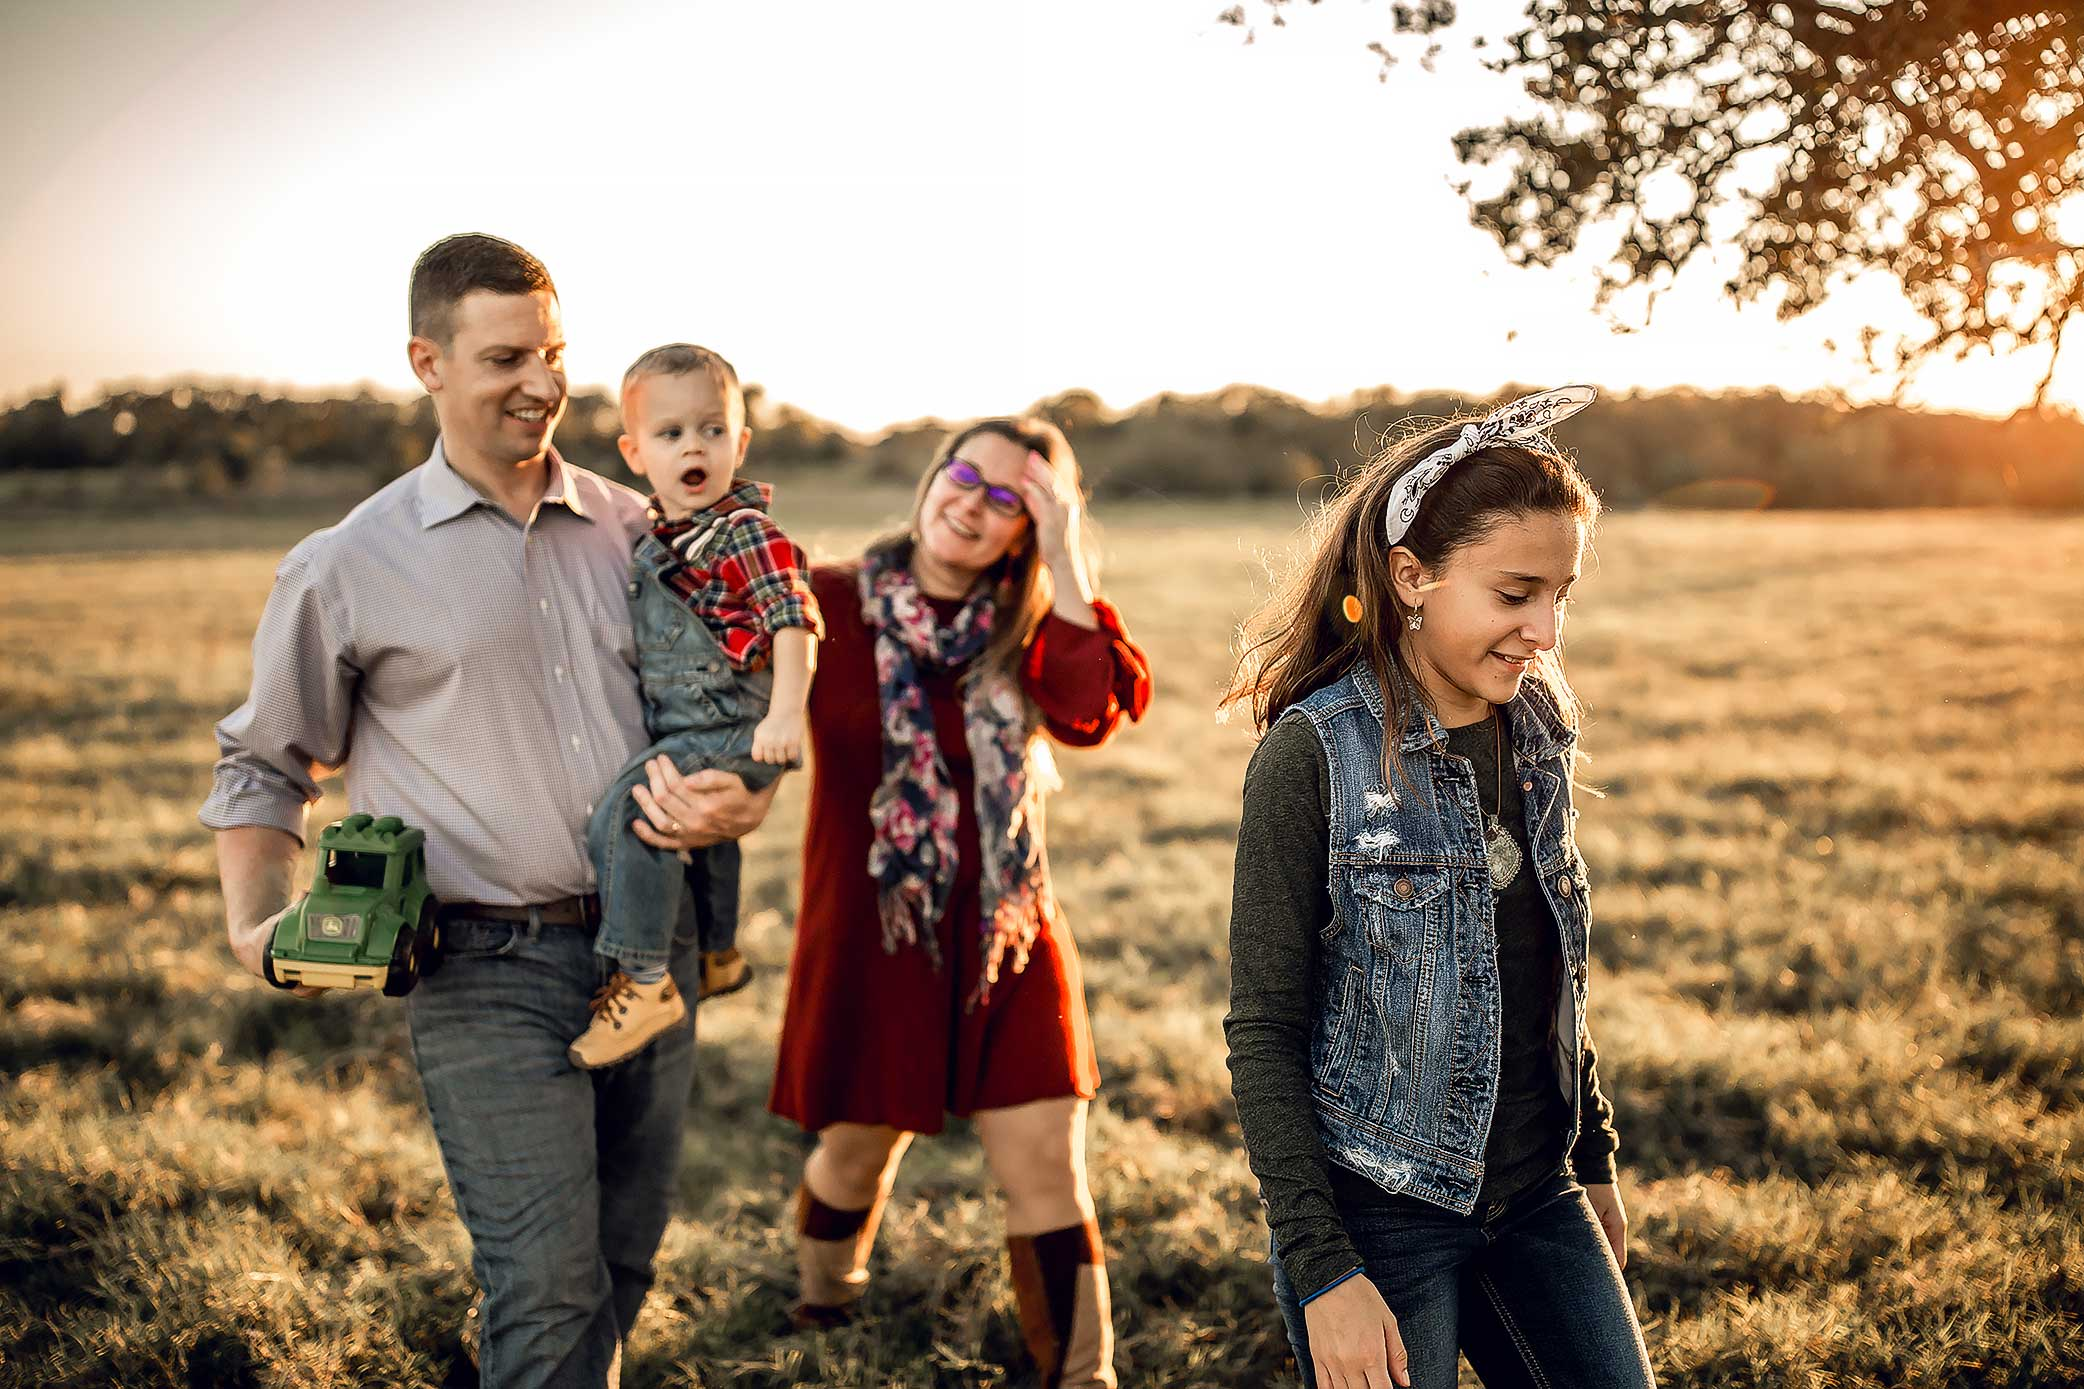 shelby-schiller-photography-family-walking-through-field.jpg